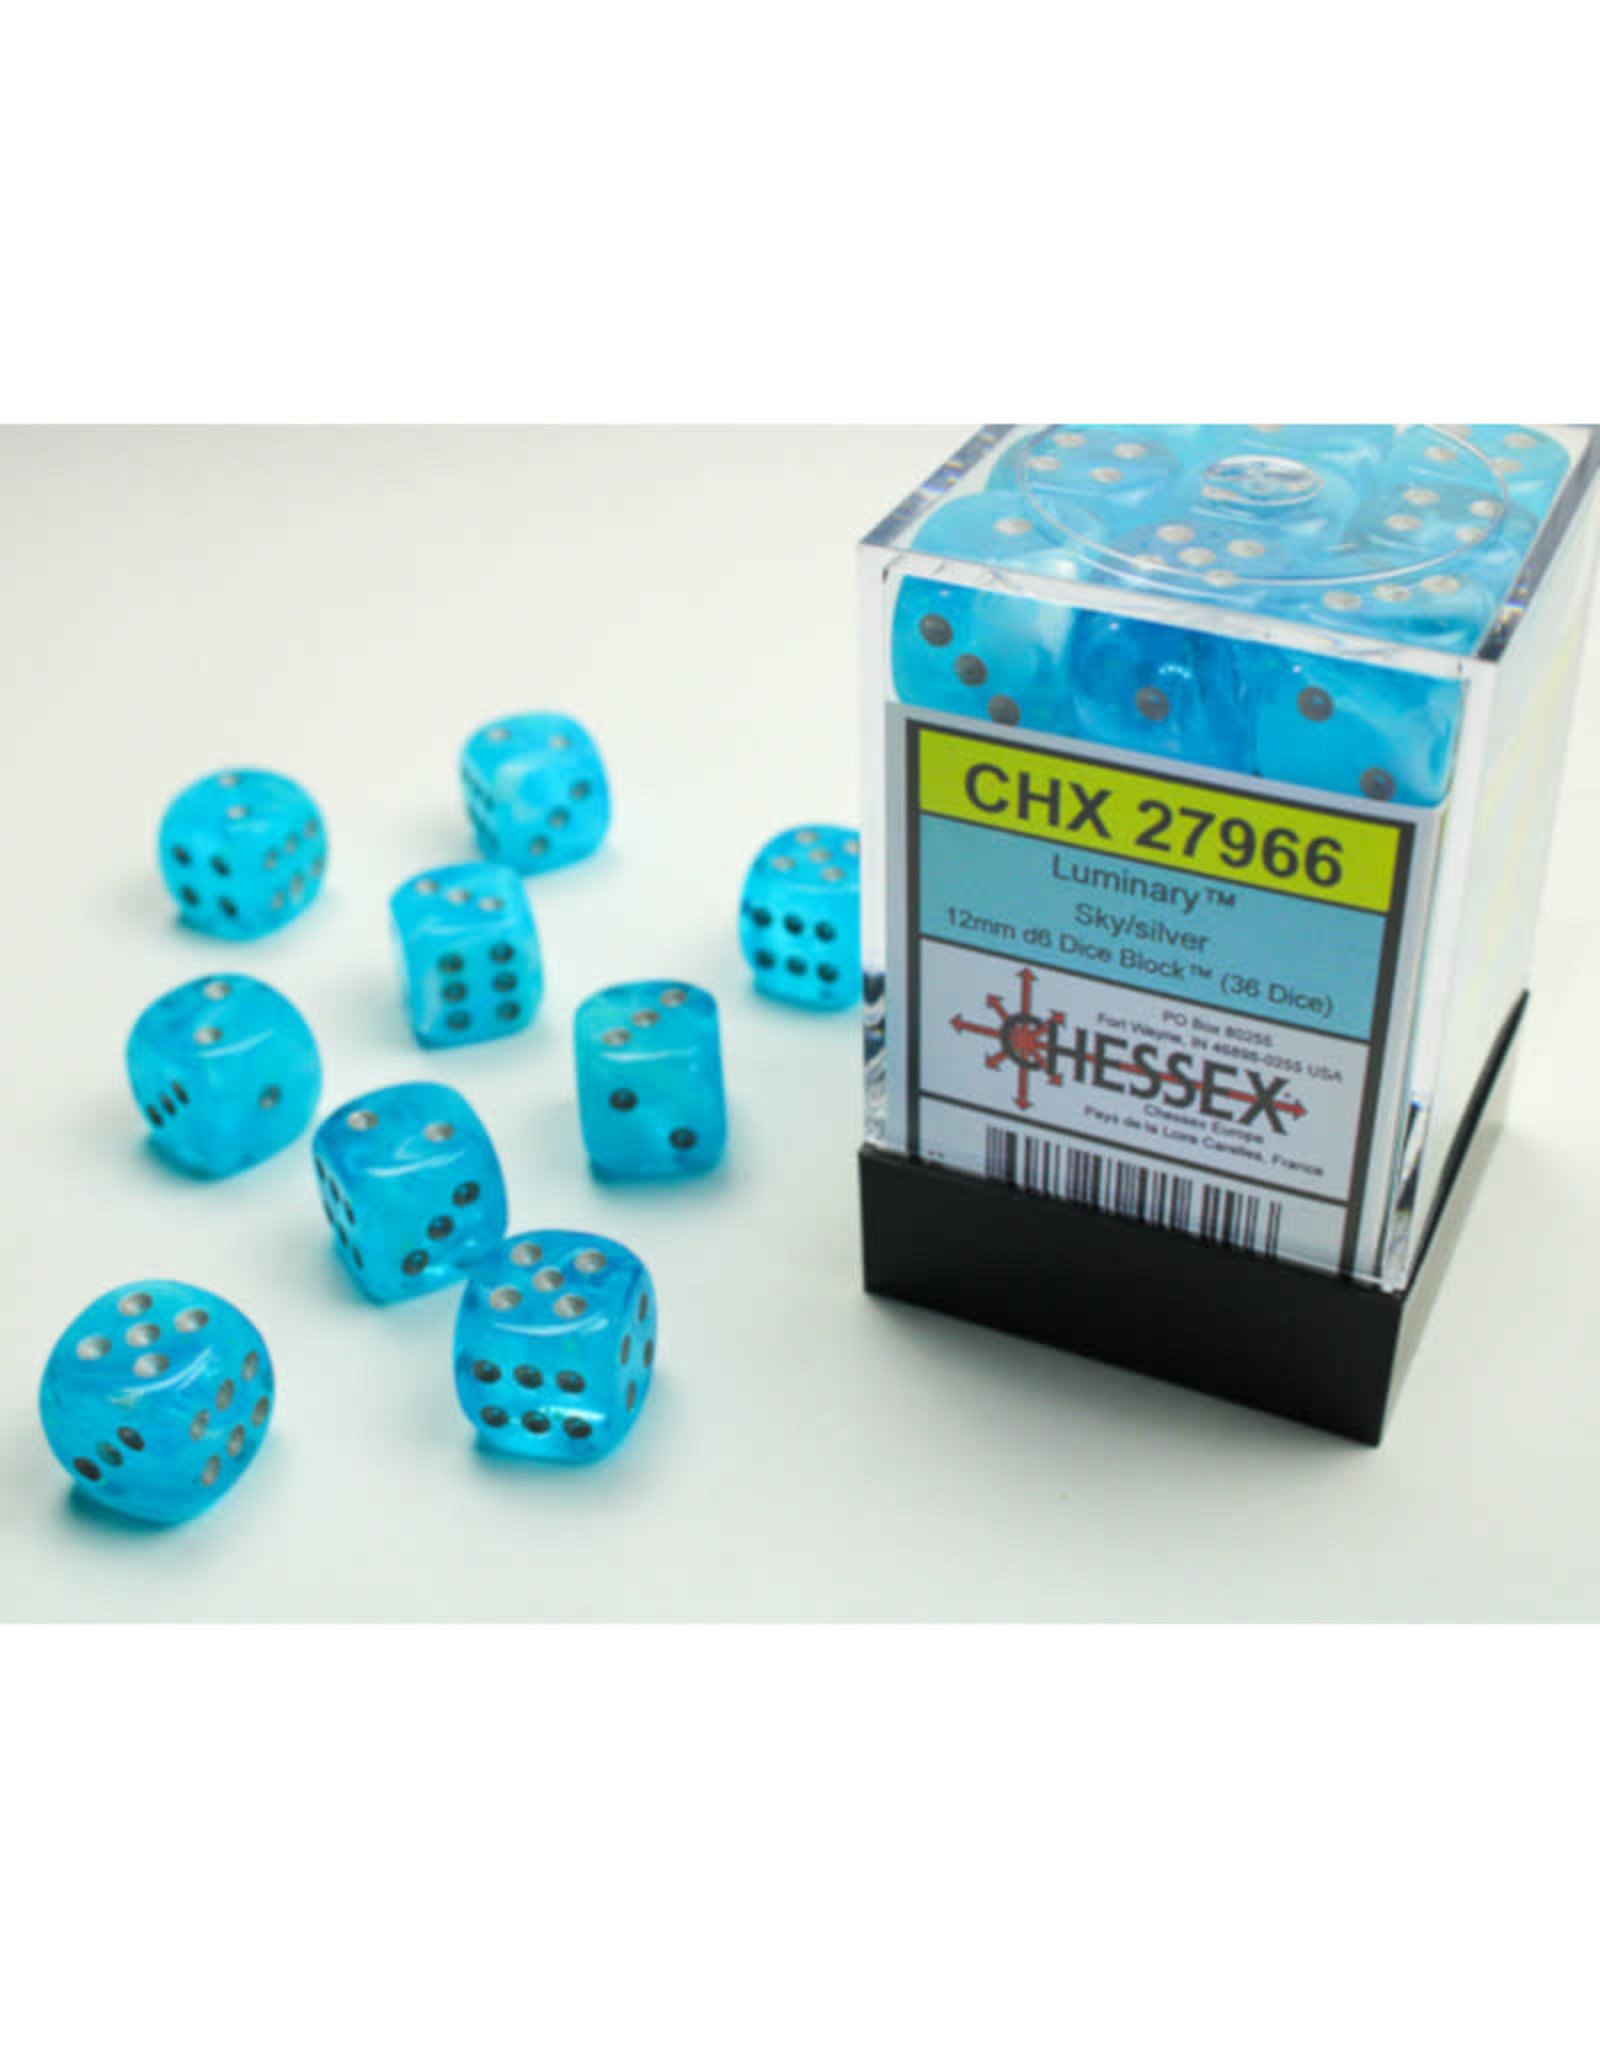 Chessex D6 Dice: 12mm Menagerie luminary Poly Sky/Silver (36)